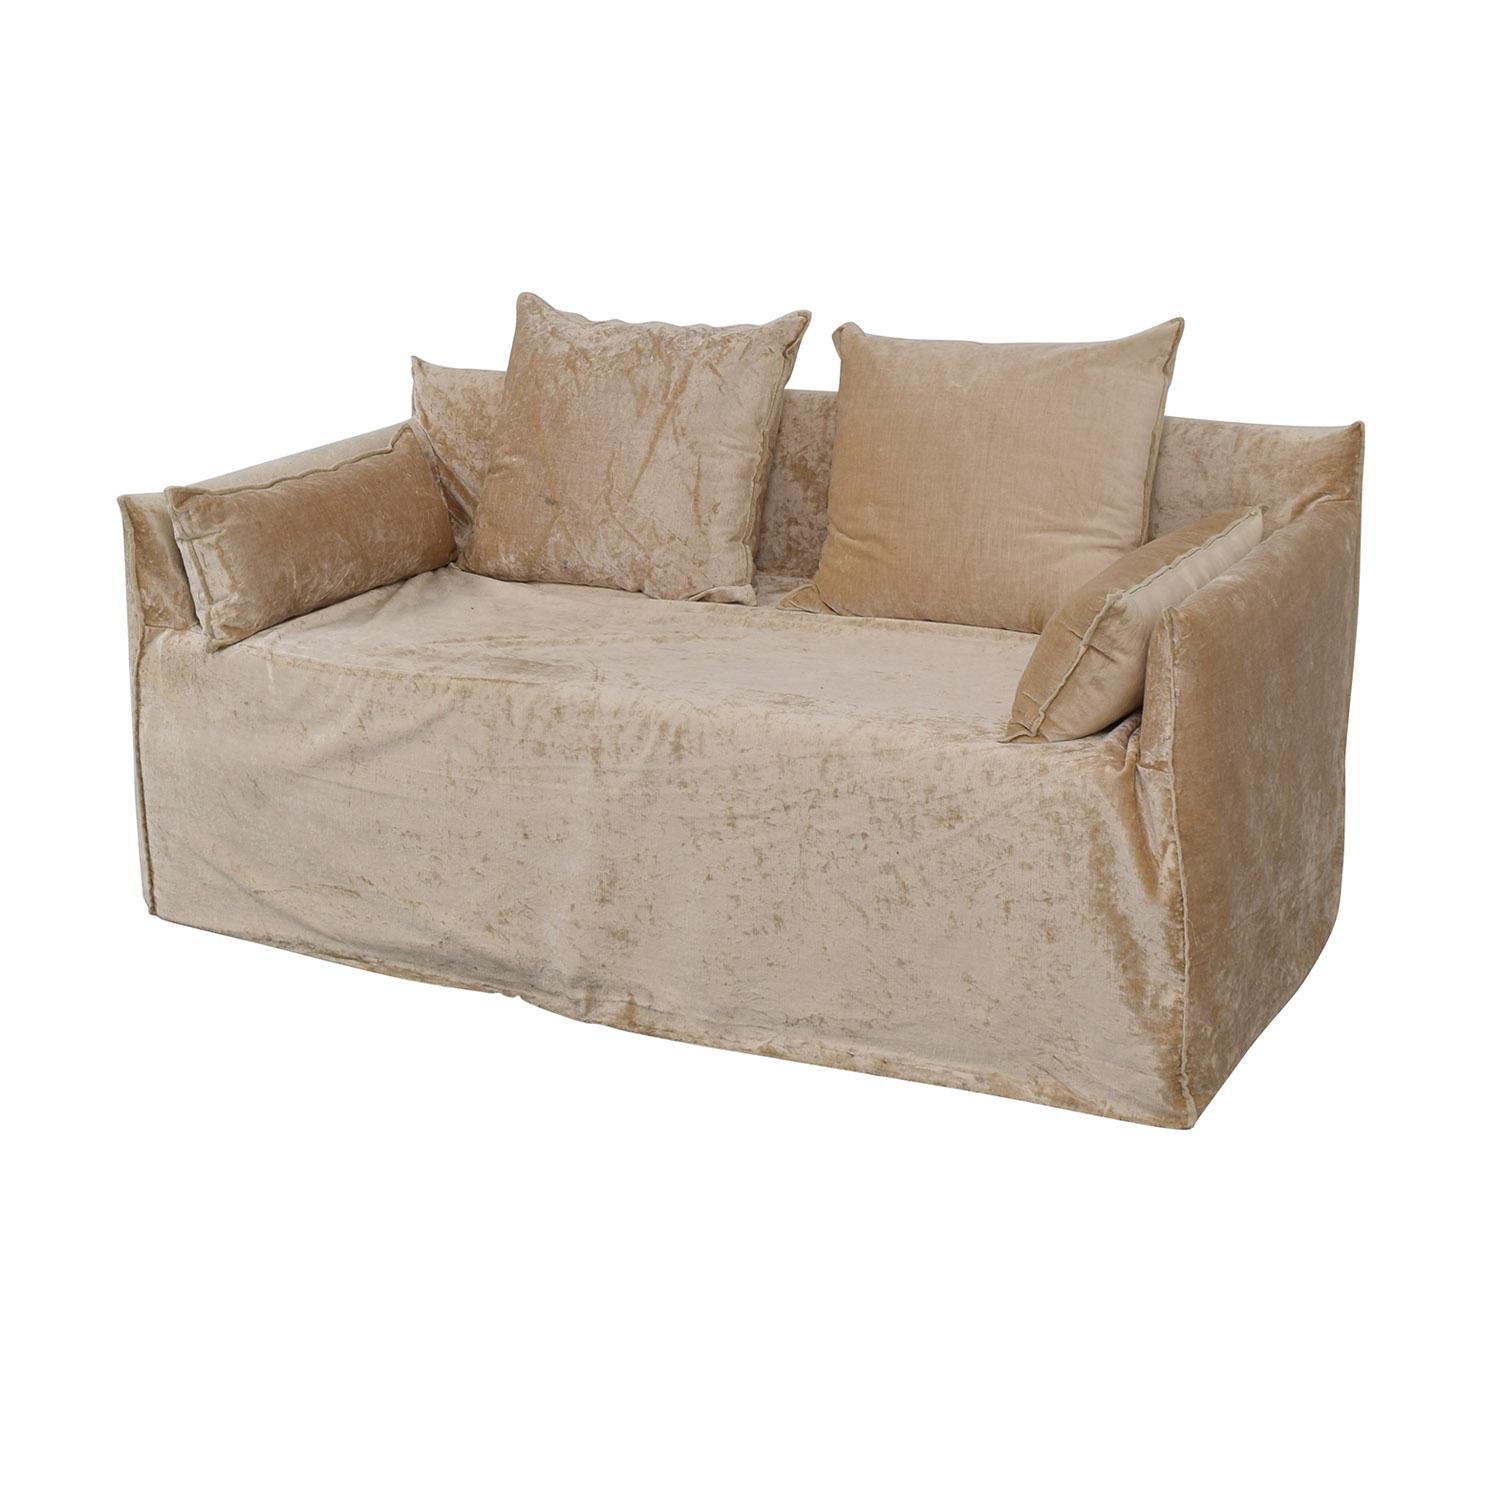 buy COCO-MAT COCO-MAT Nafsika Sofa Bed online